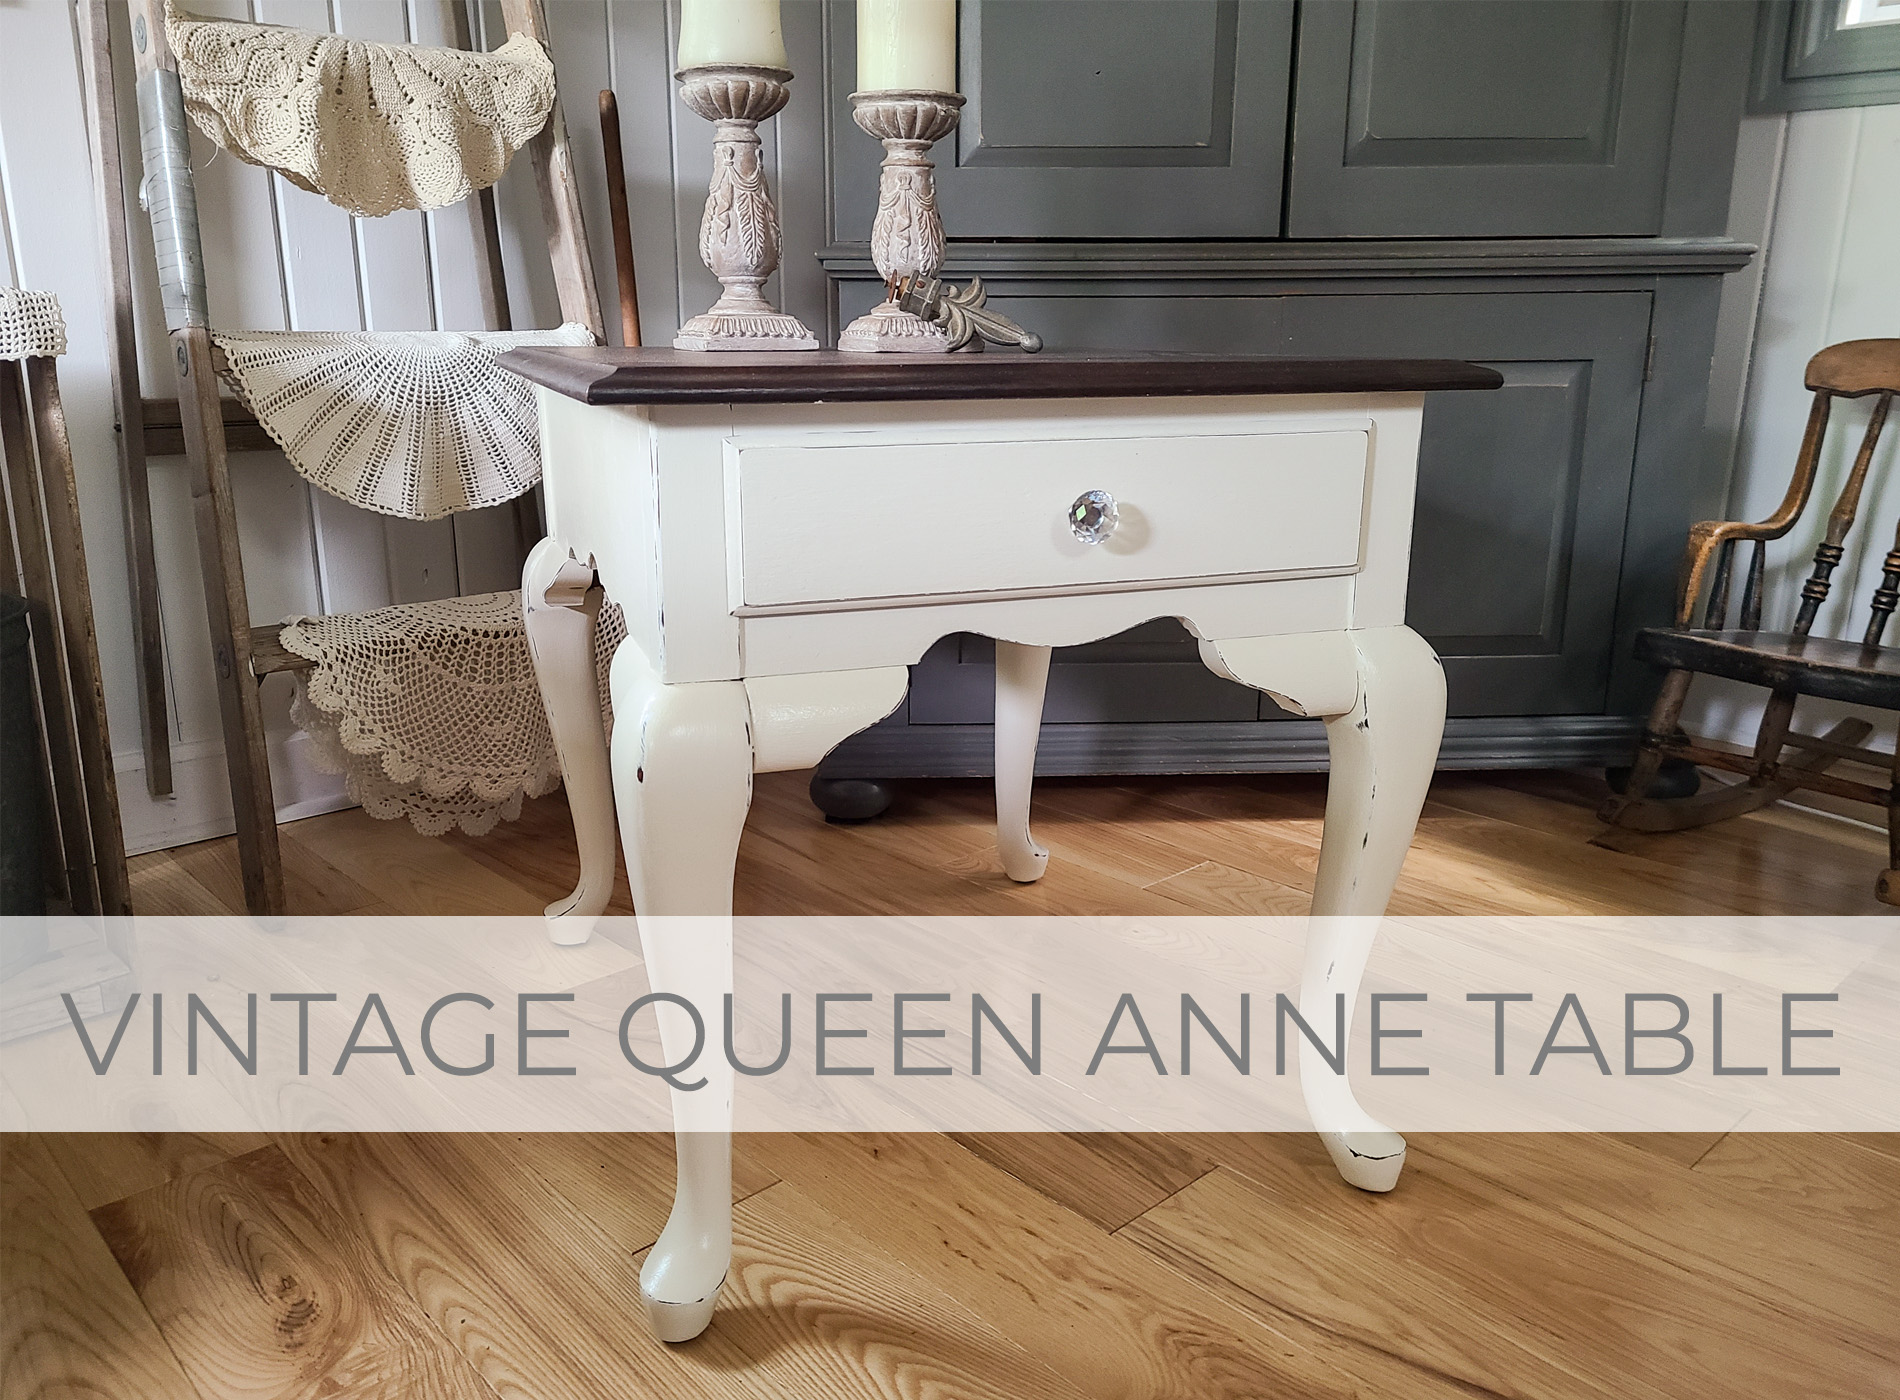 Vintage Queen Anne Table Makeover by Prodigal Pieces | prodigalpieces.com #prodigalpieces